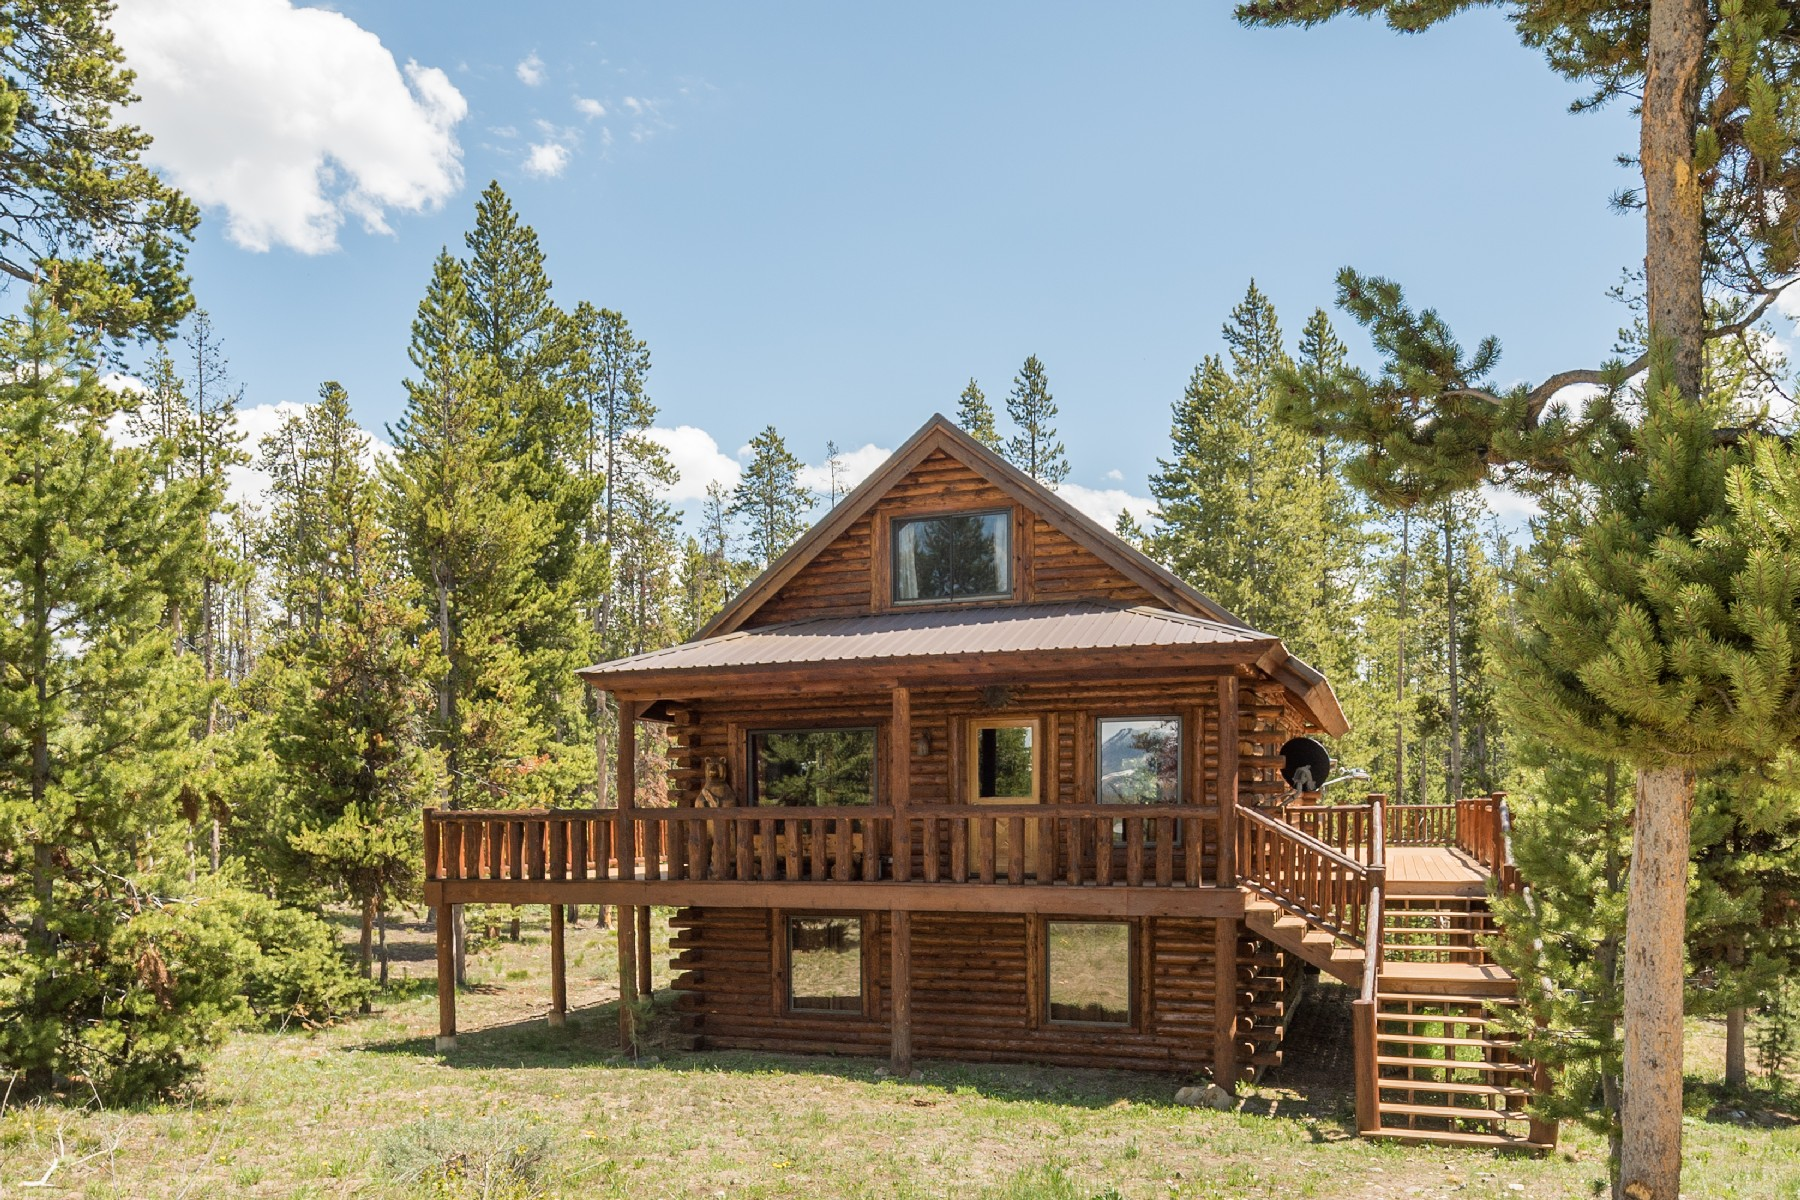 Single Family Home for Sale at Smiley Creek Seclusion 213 Skyline Dr Stanley, Idaho 83278 United States